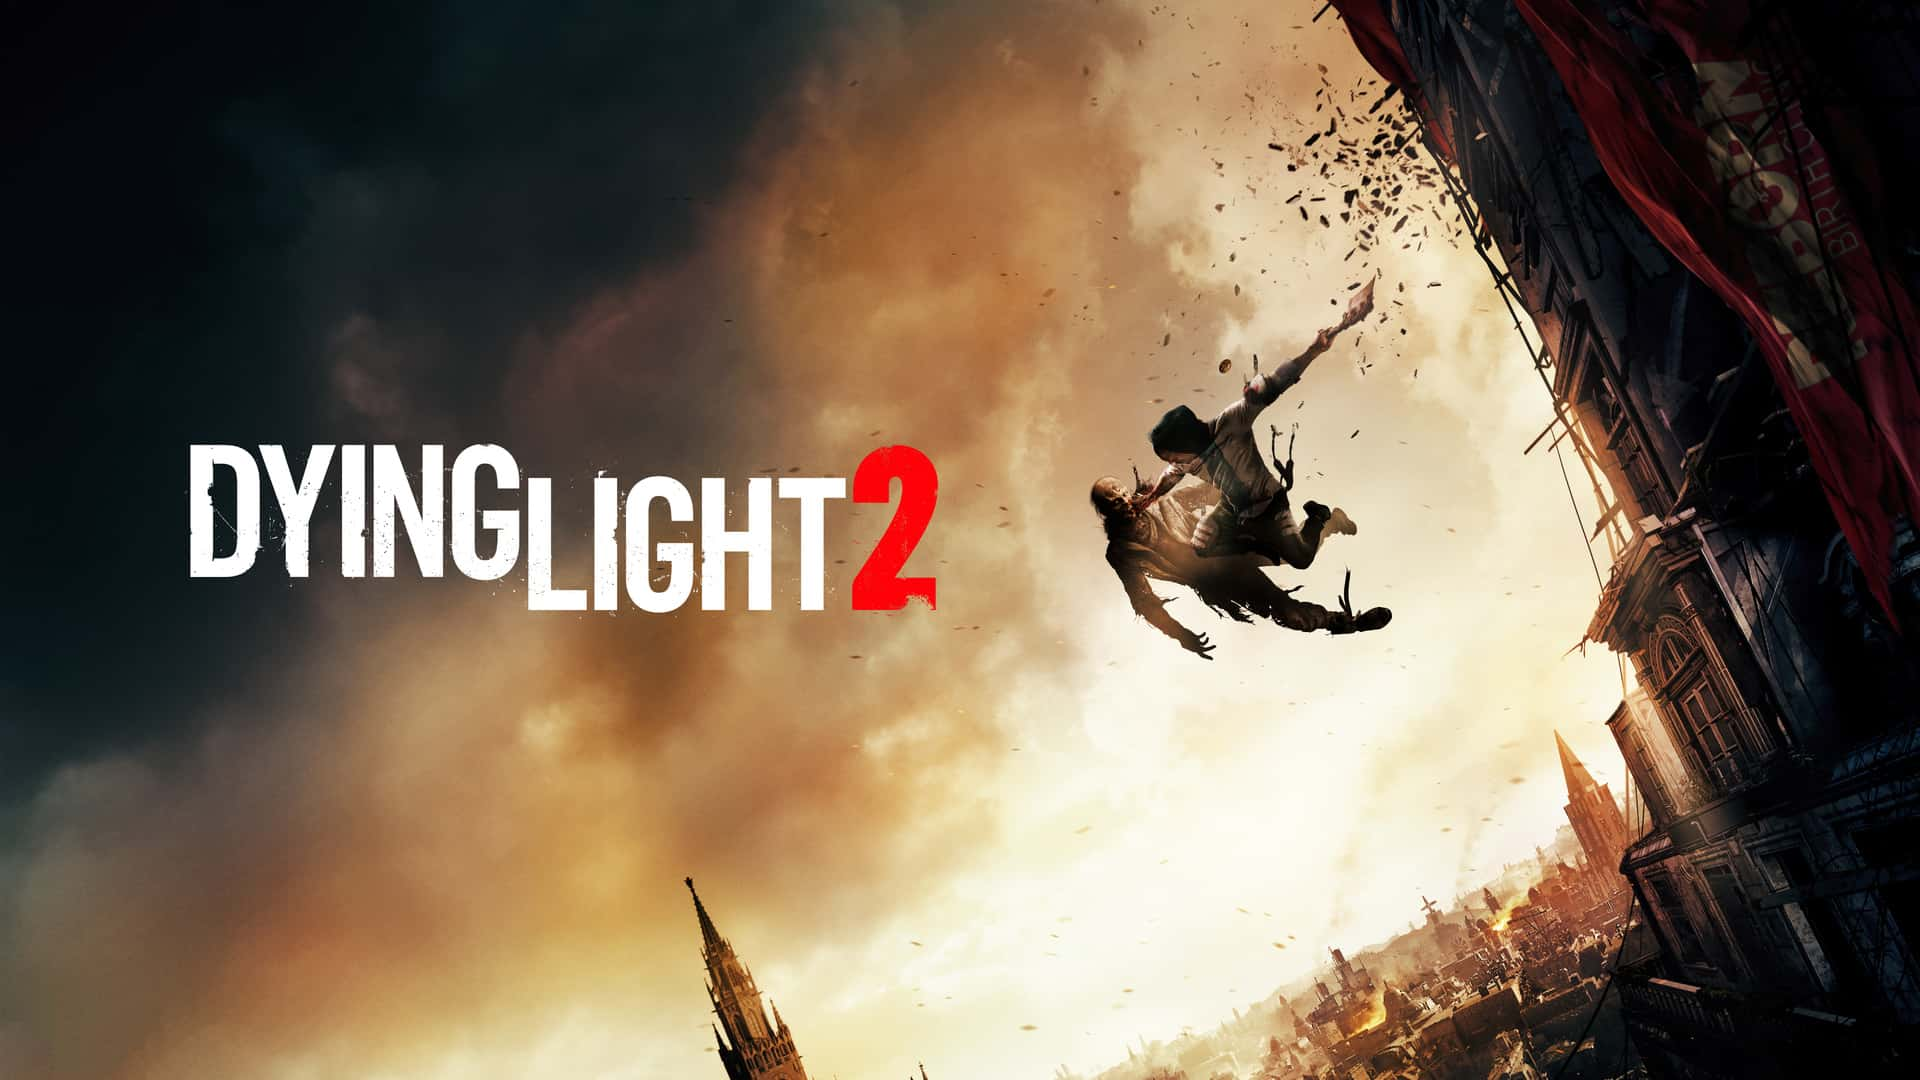 Techland Once Again Teams Up With Koch Media To Deliver Dying Light 2 In Europe And Australia